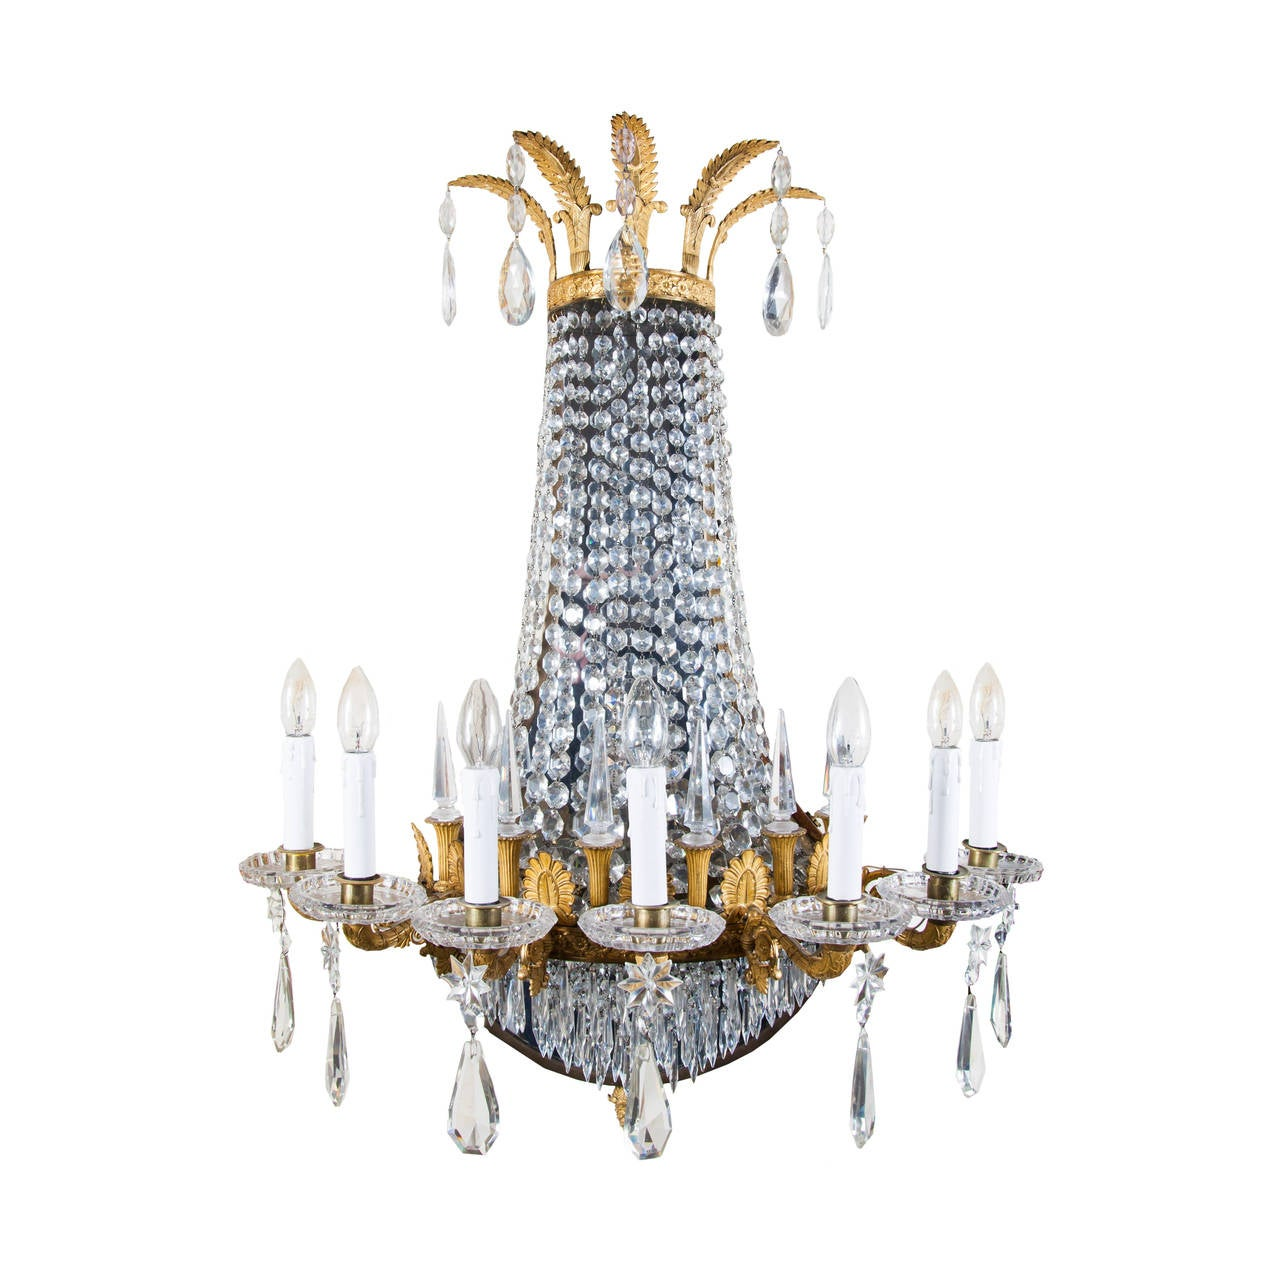 A Pair Of Empire Style Ormolu And Cut Glass Wall Lights